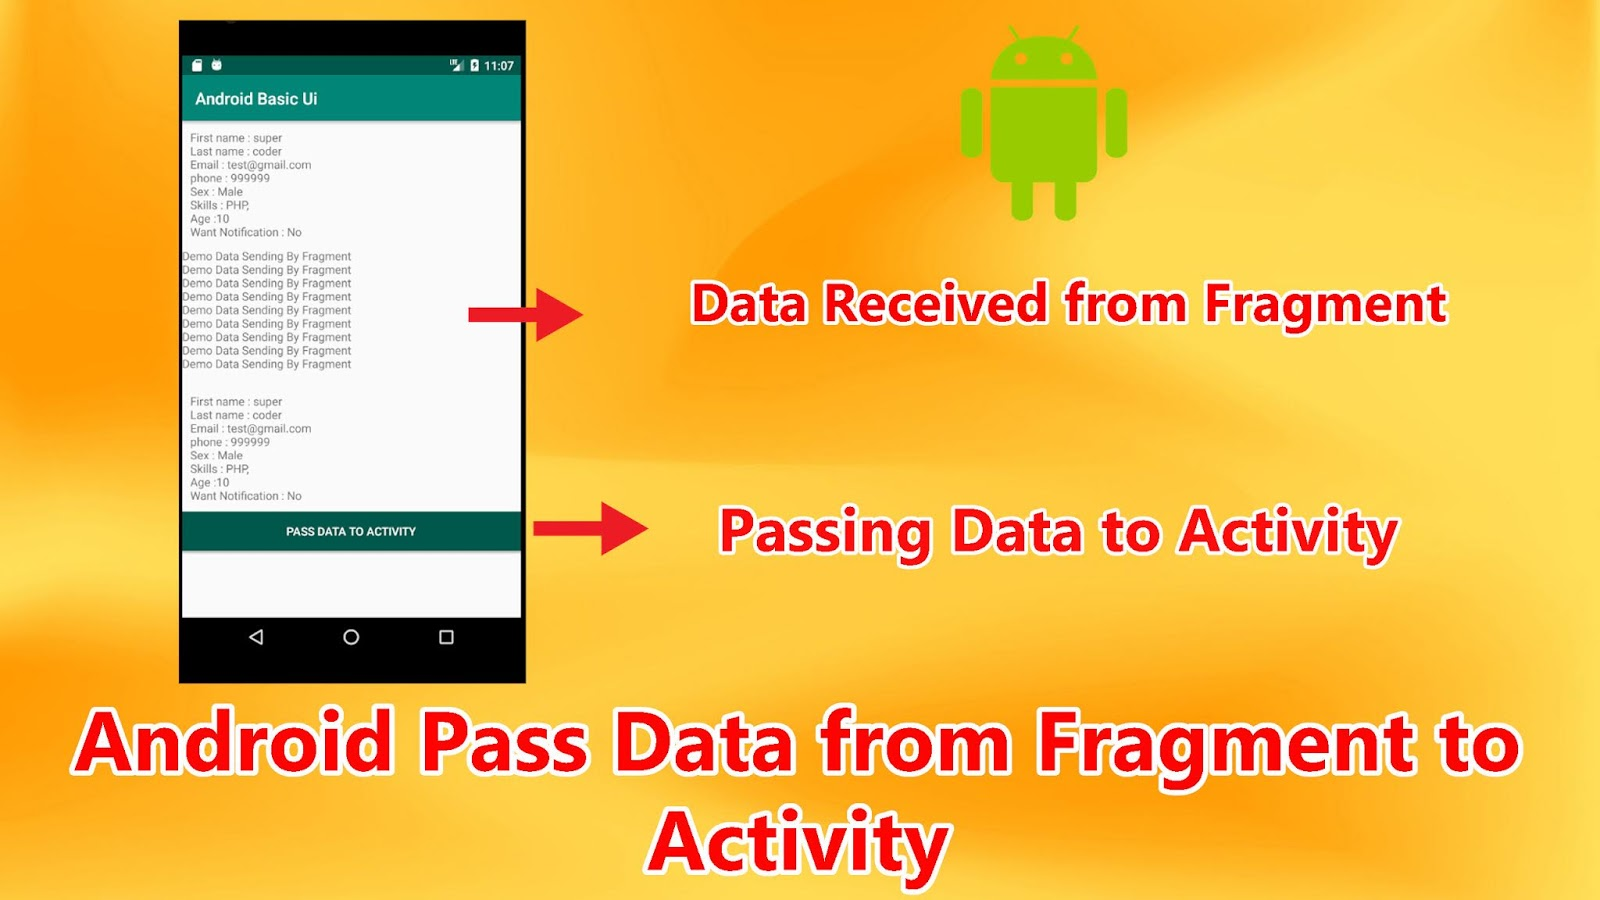 Android Pass Data from Fragment to ActivityAndroid Pass Data from Fragment to Activity